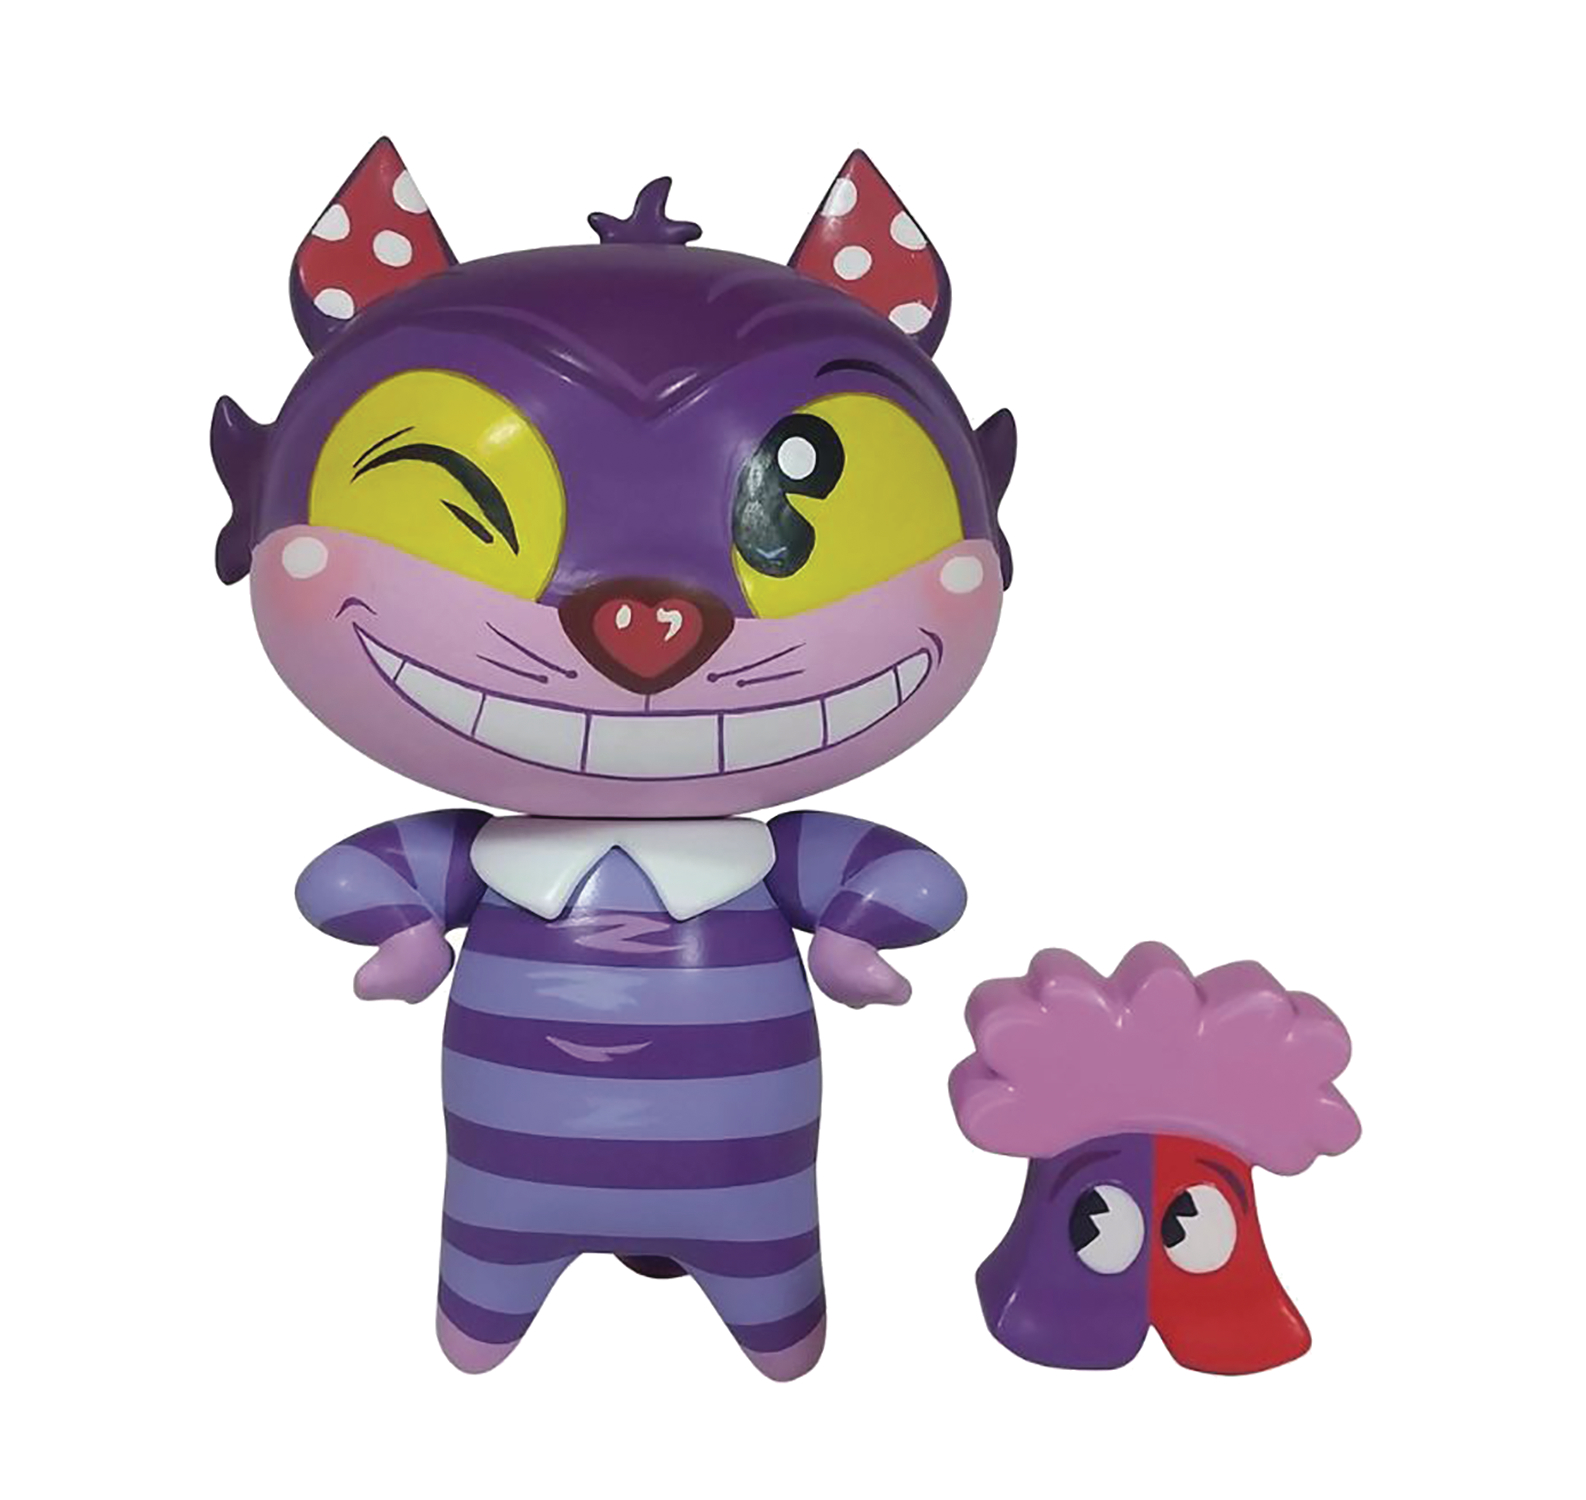 MISS MINDY ALICE IN WONDERLAND CHESHIRE CAT FIG